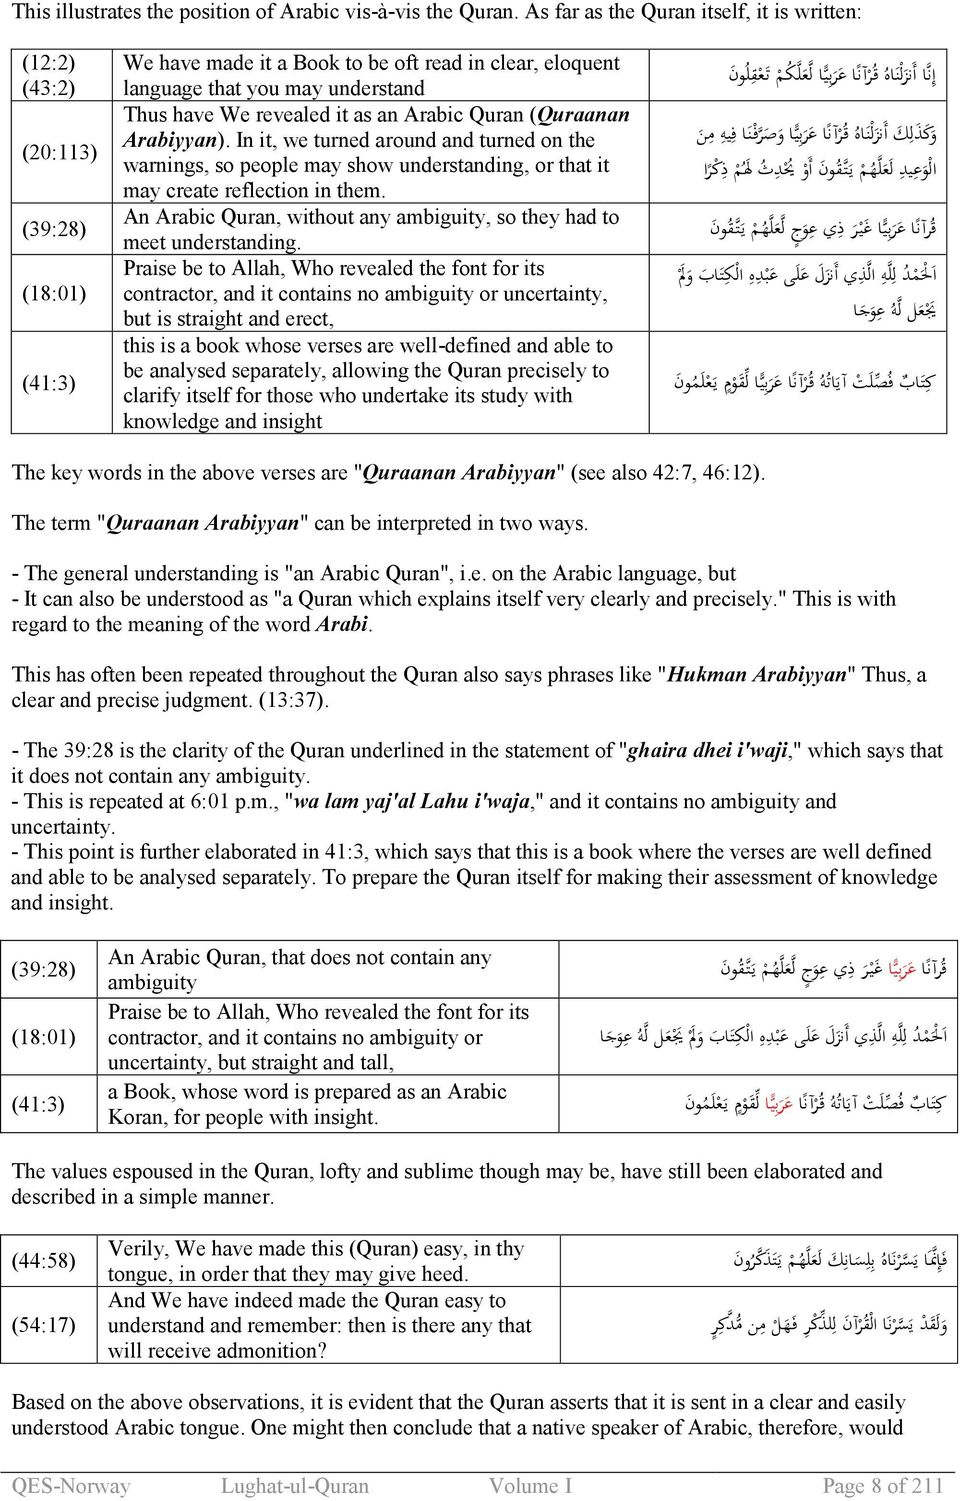 LUGHAT-UL-QURAN DICTIONARY OF QURAN VOLUME I  Ebook edition